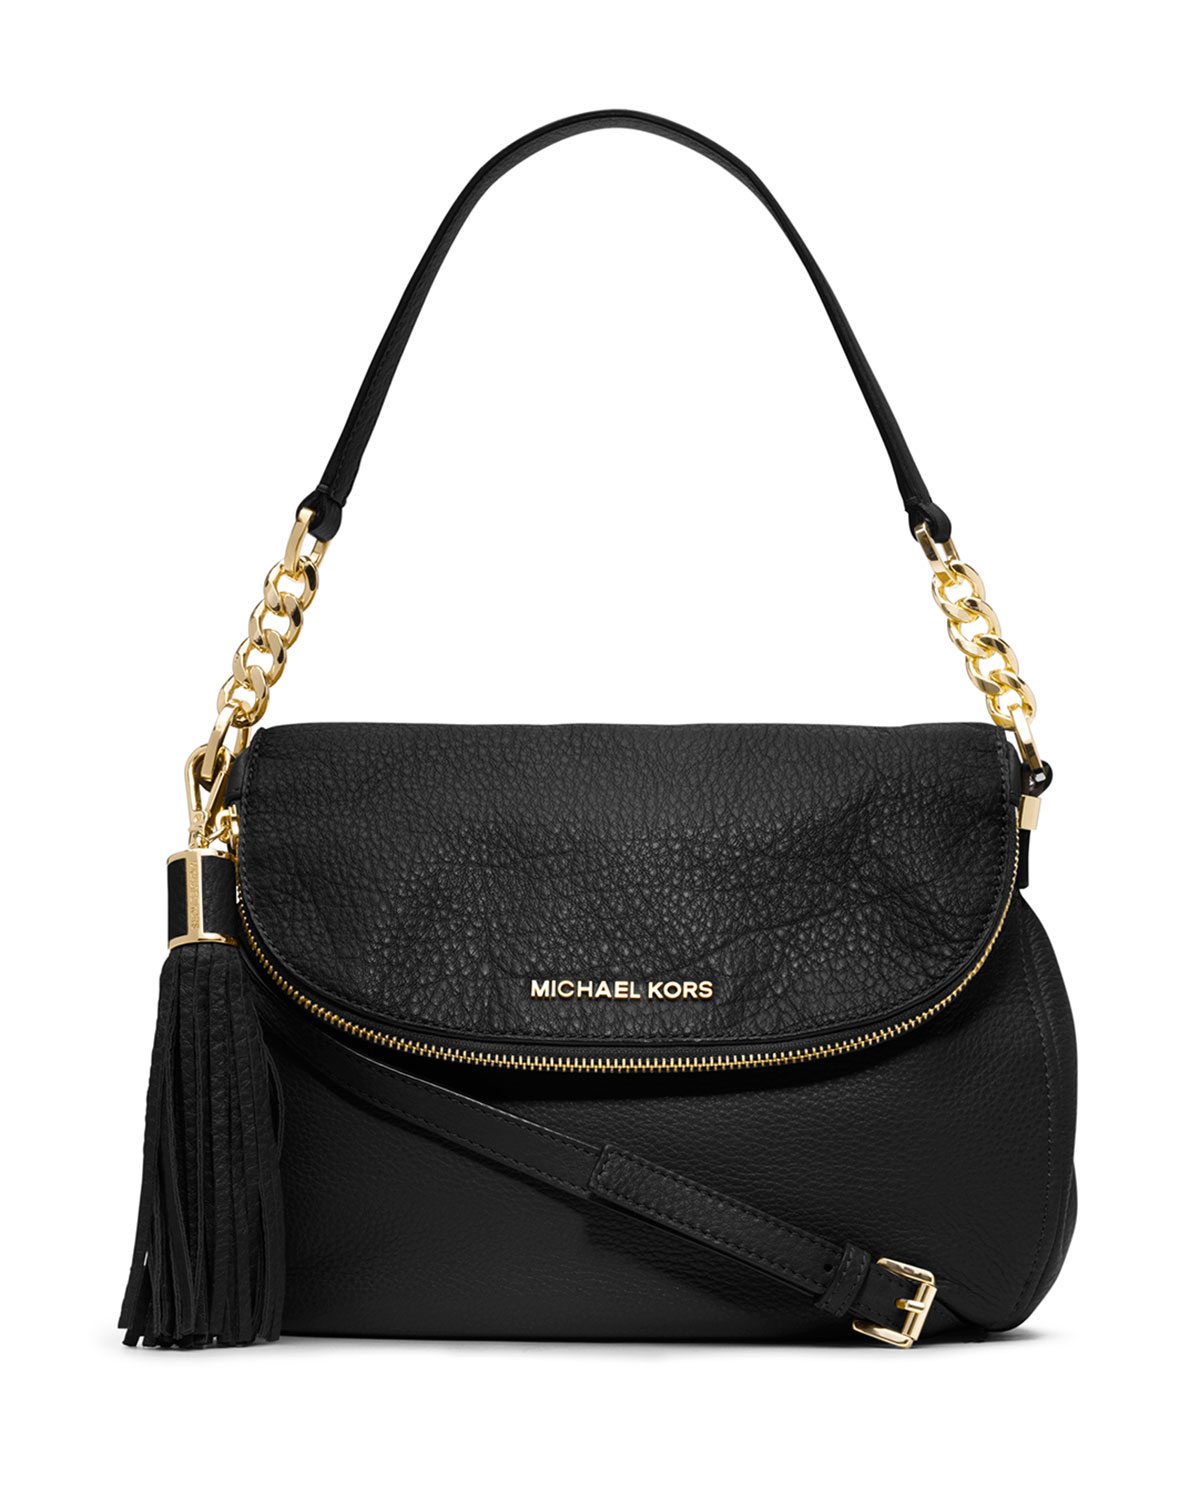 michael michael kors bedford medium tassel convertible shoulder bag in black lyst. Black Bedroom Furniture Sets. Home Design Ideas